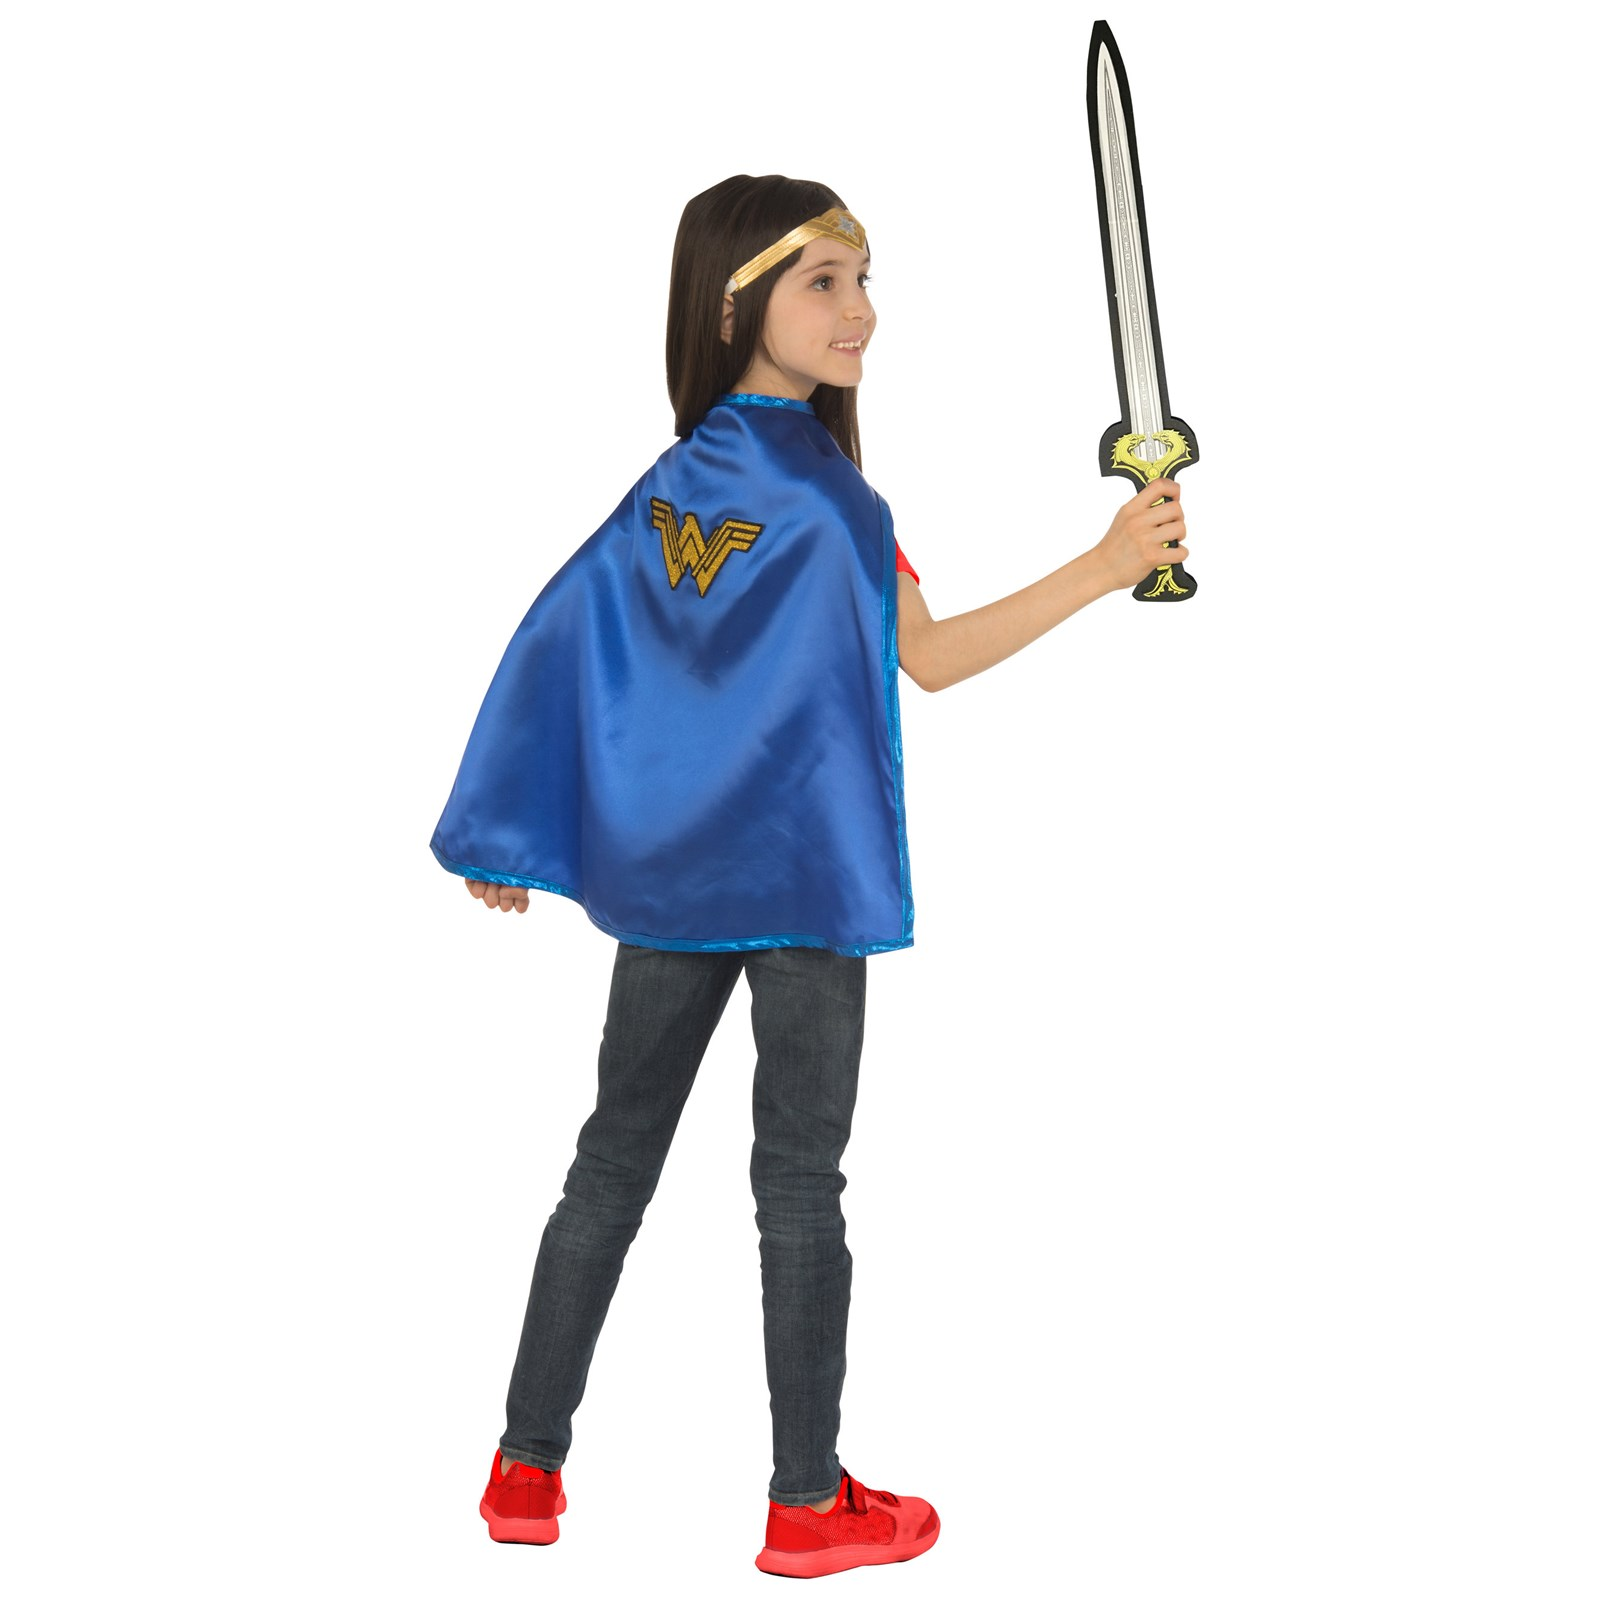 Wonder Woman Sword and Cape Set